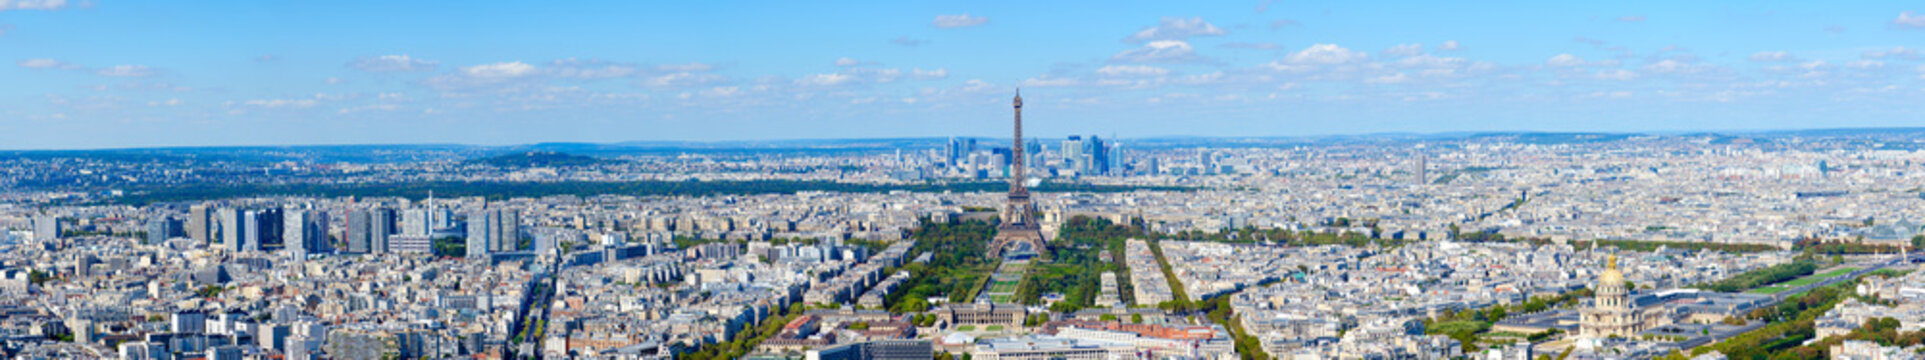 Scenic panoramic view from above on Eiffel Tower, Champ de Mars, Paris, France